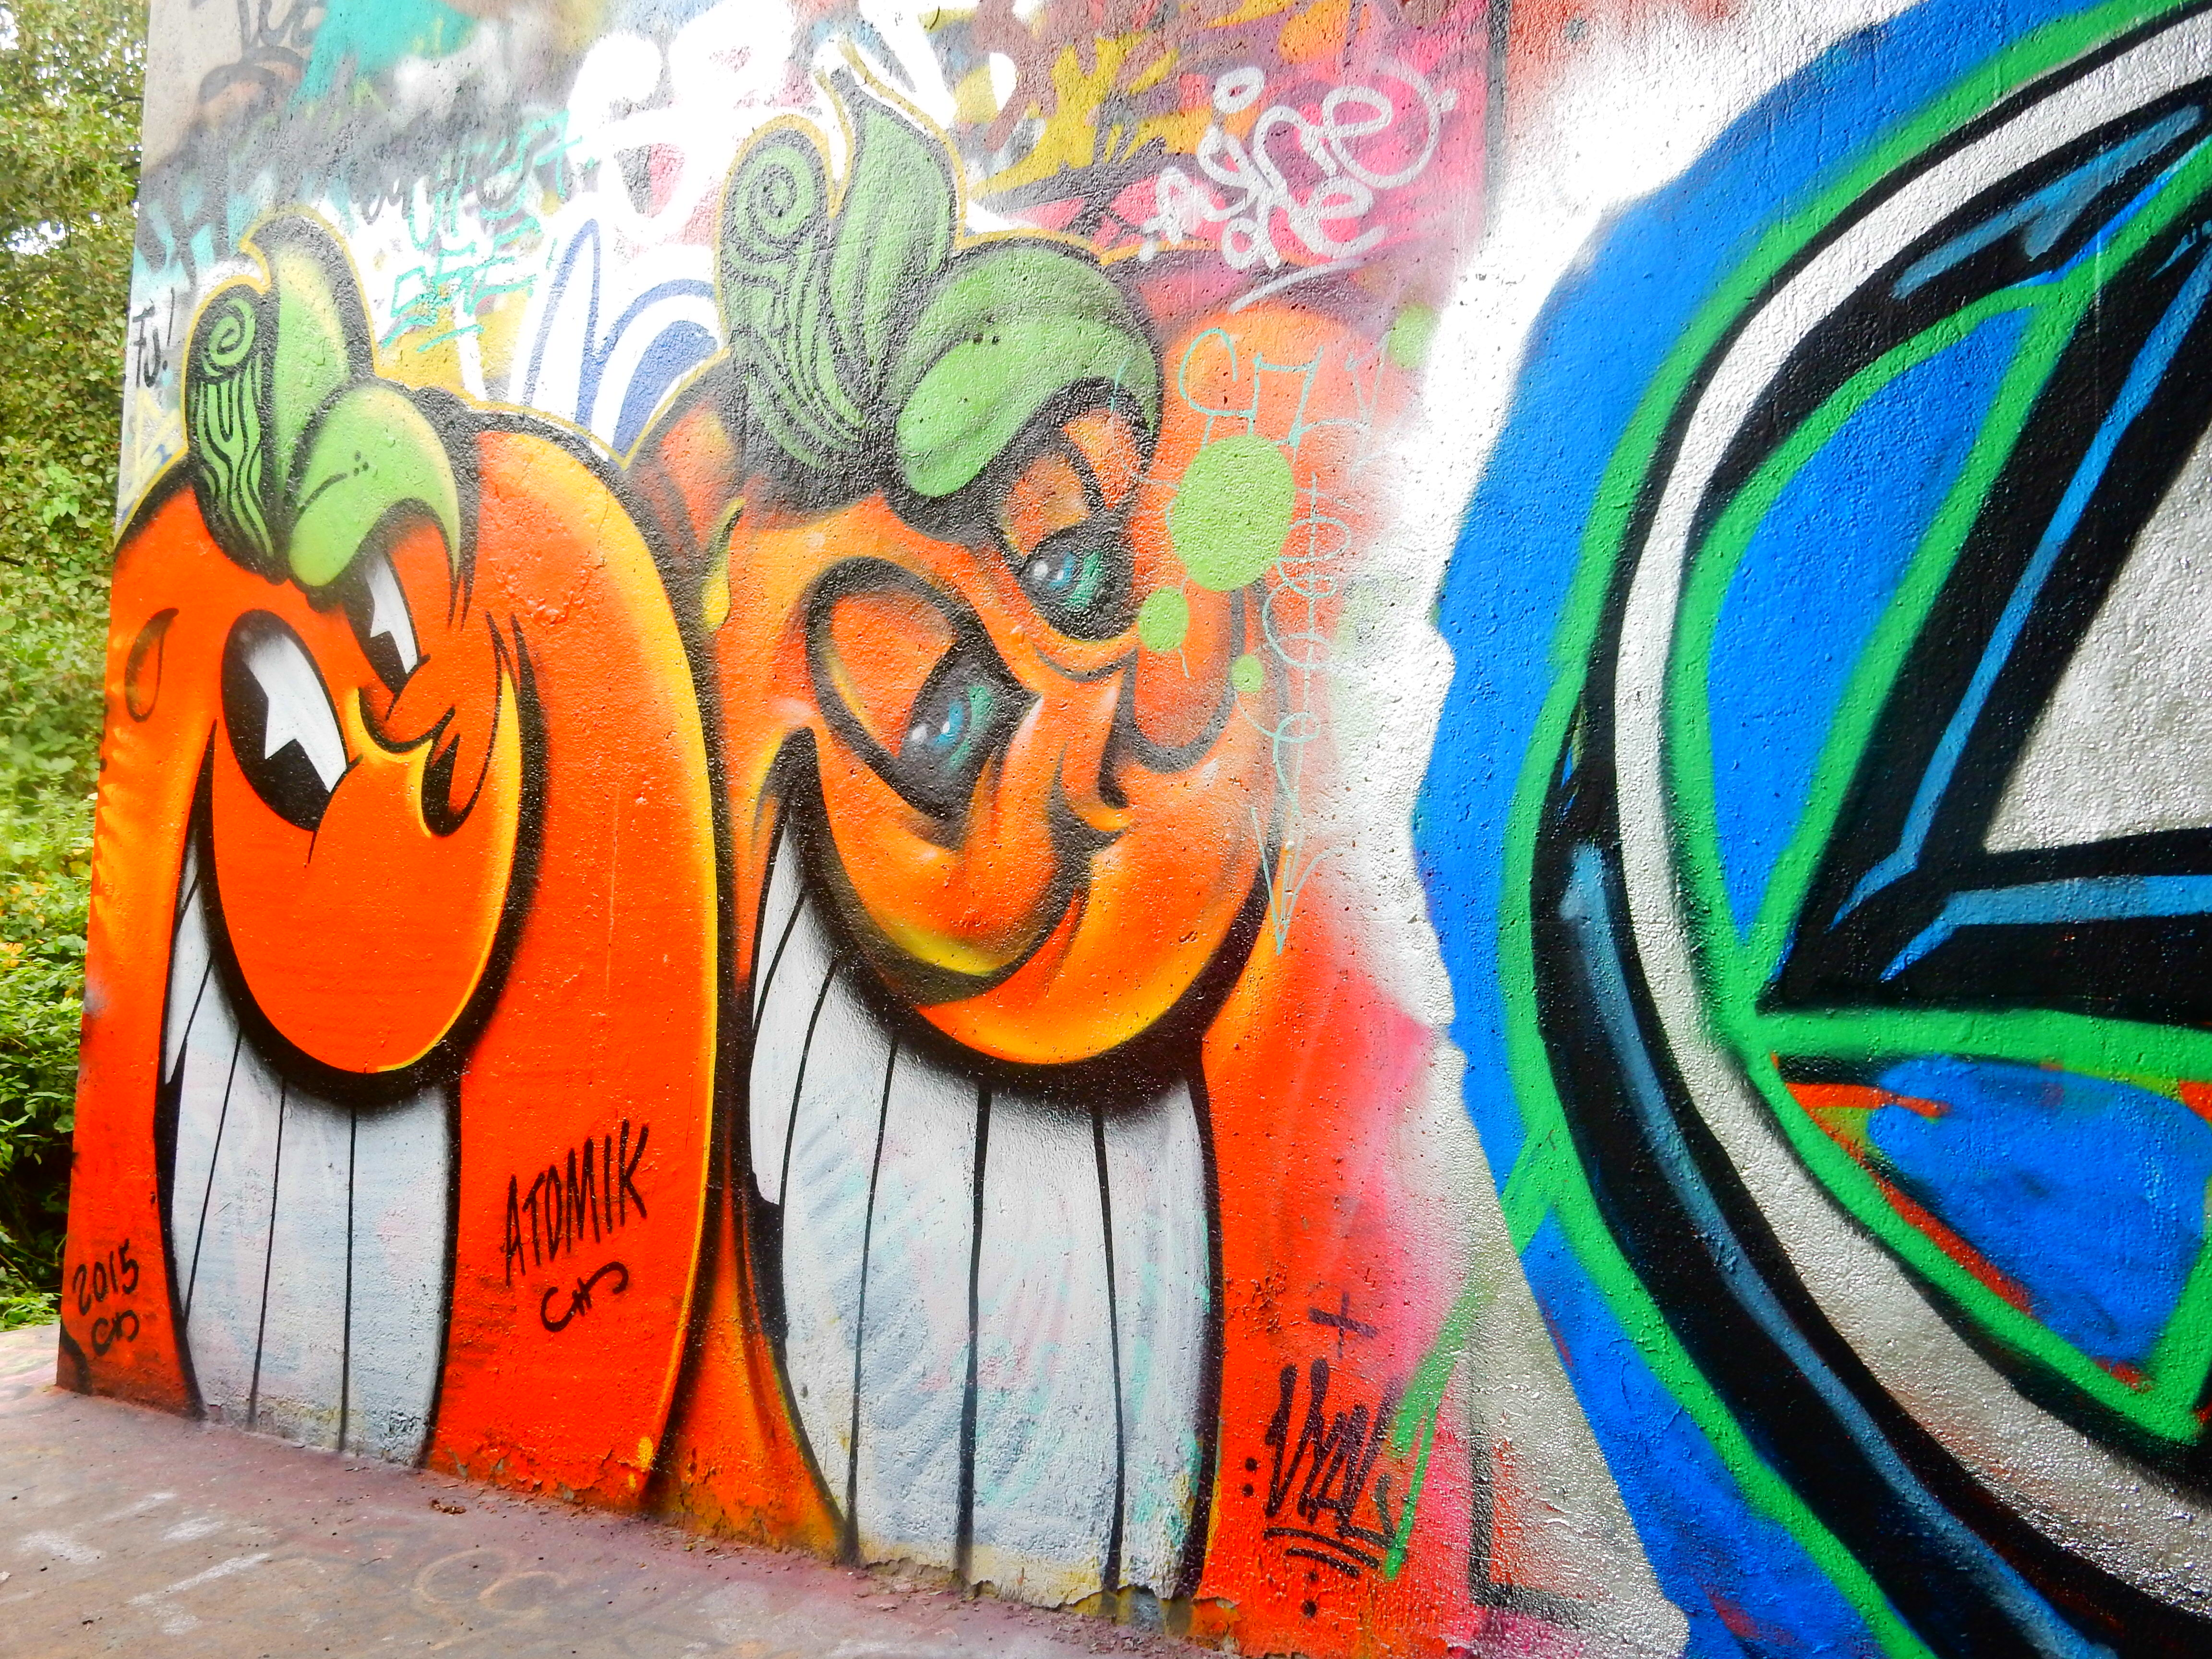 Yokohama graffiti wall - Locals Told Me About A Legal Graffiti Park One Stop Away From Amsterdam Centraal It S Called Flevopark And Some Talented Artists Have Put Their Work On